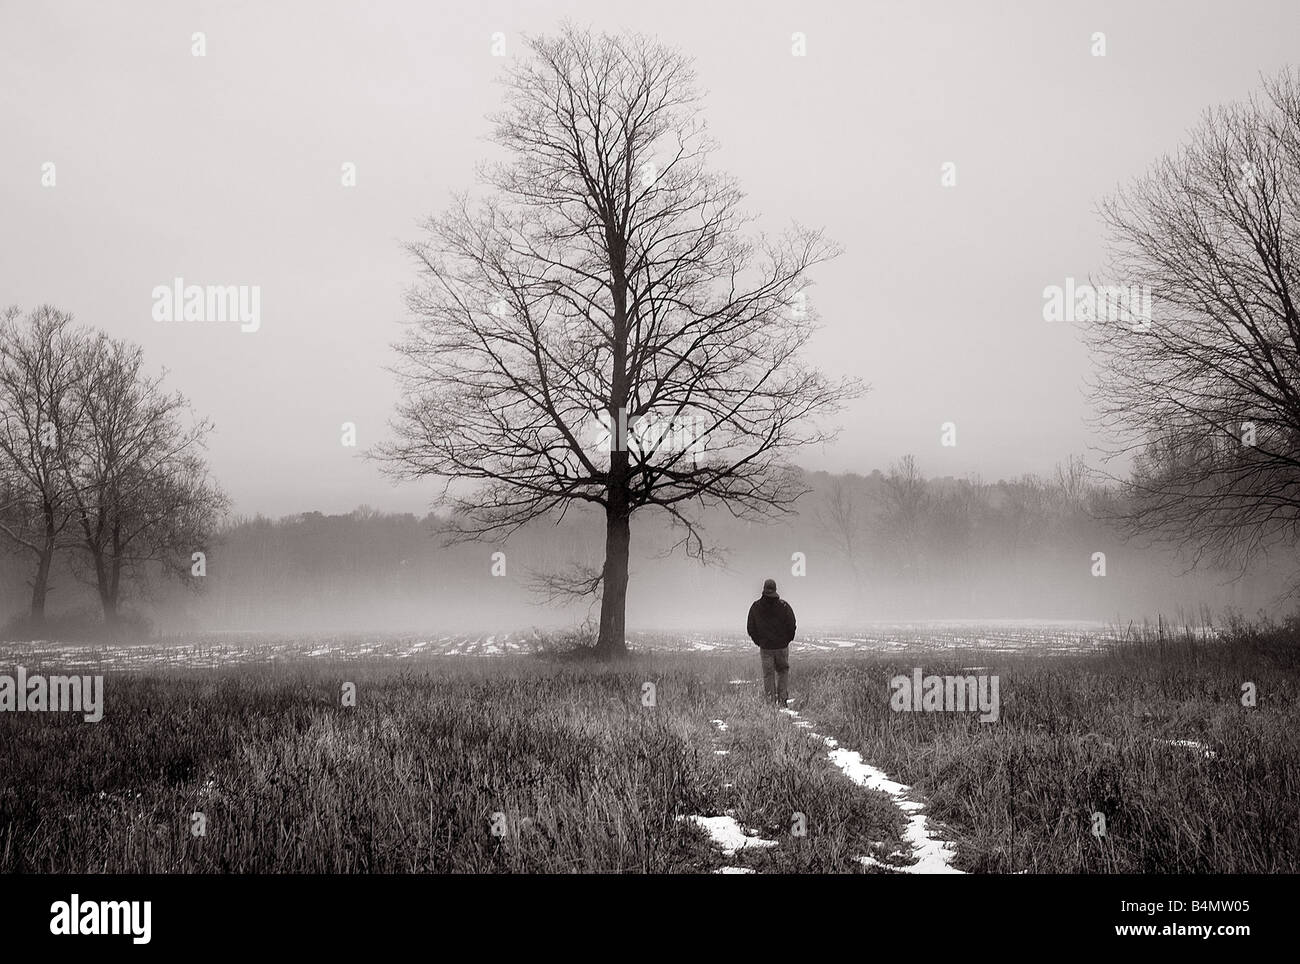 Dreamy image of a shadowy man walking in the mist near a large tree - Stock Image